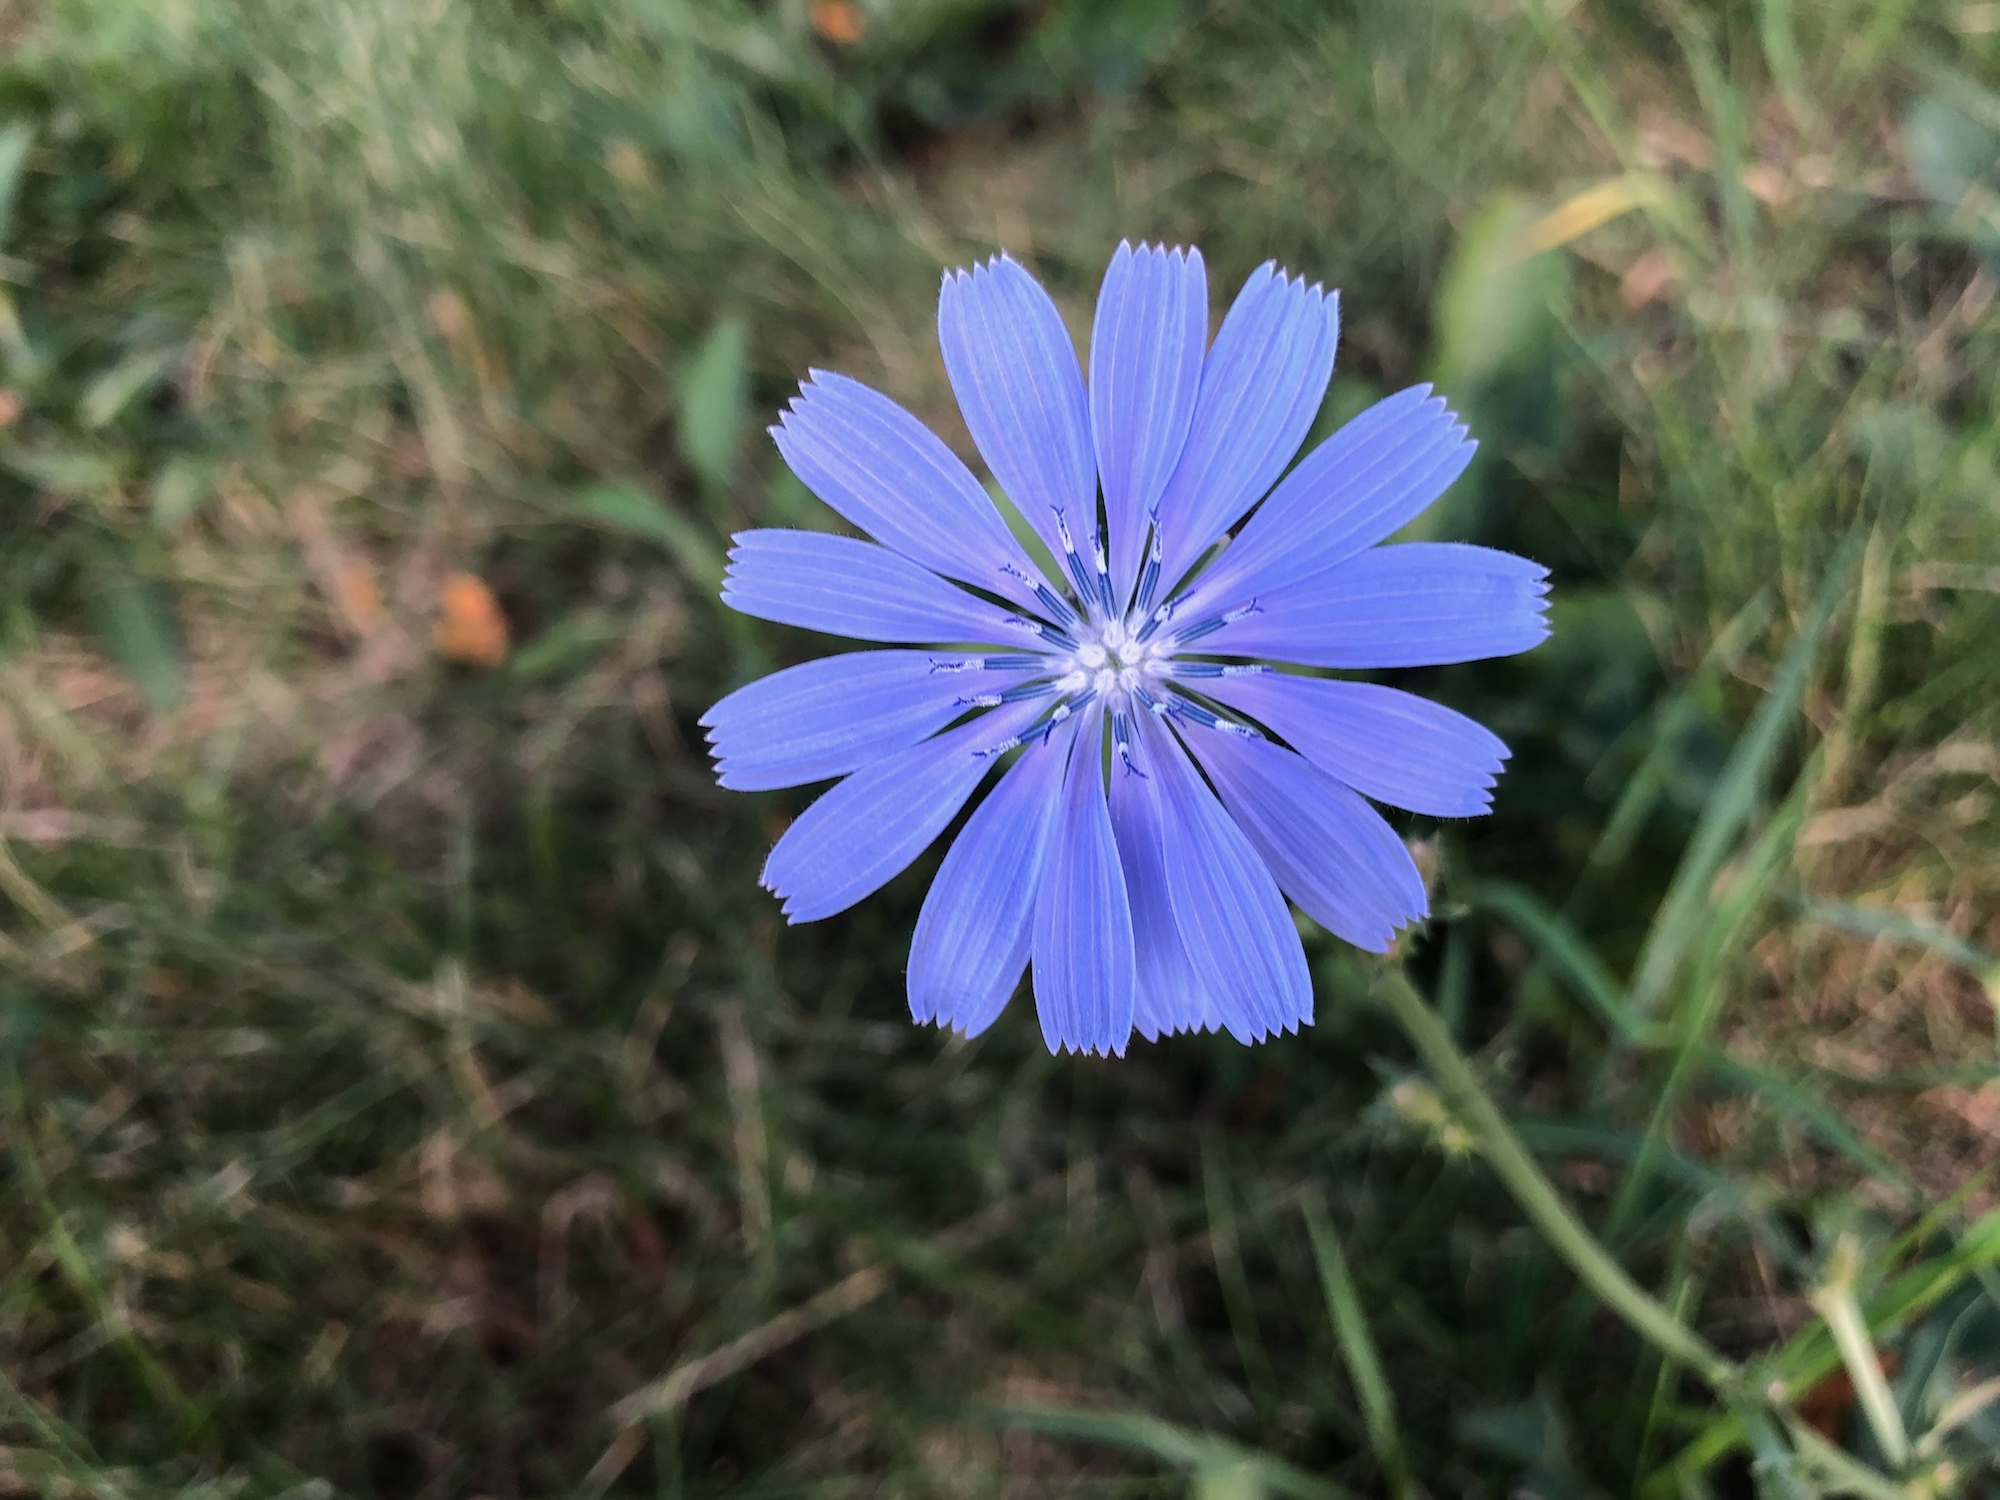 Chicory in Marion Dunn Prairie in Madison, Wisconsin on August 3, 2019.